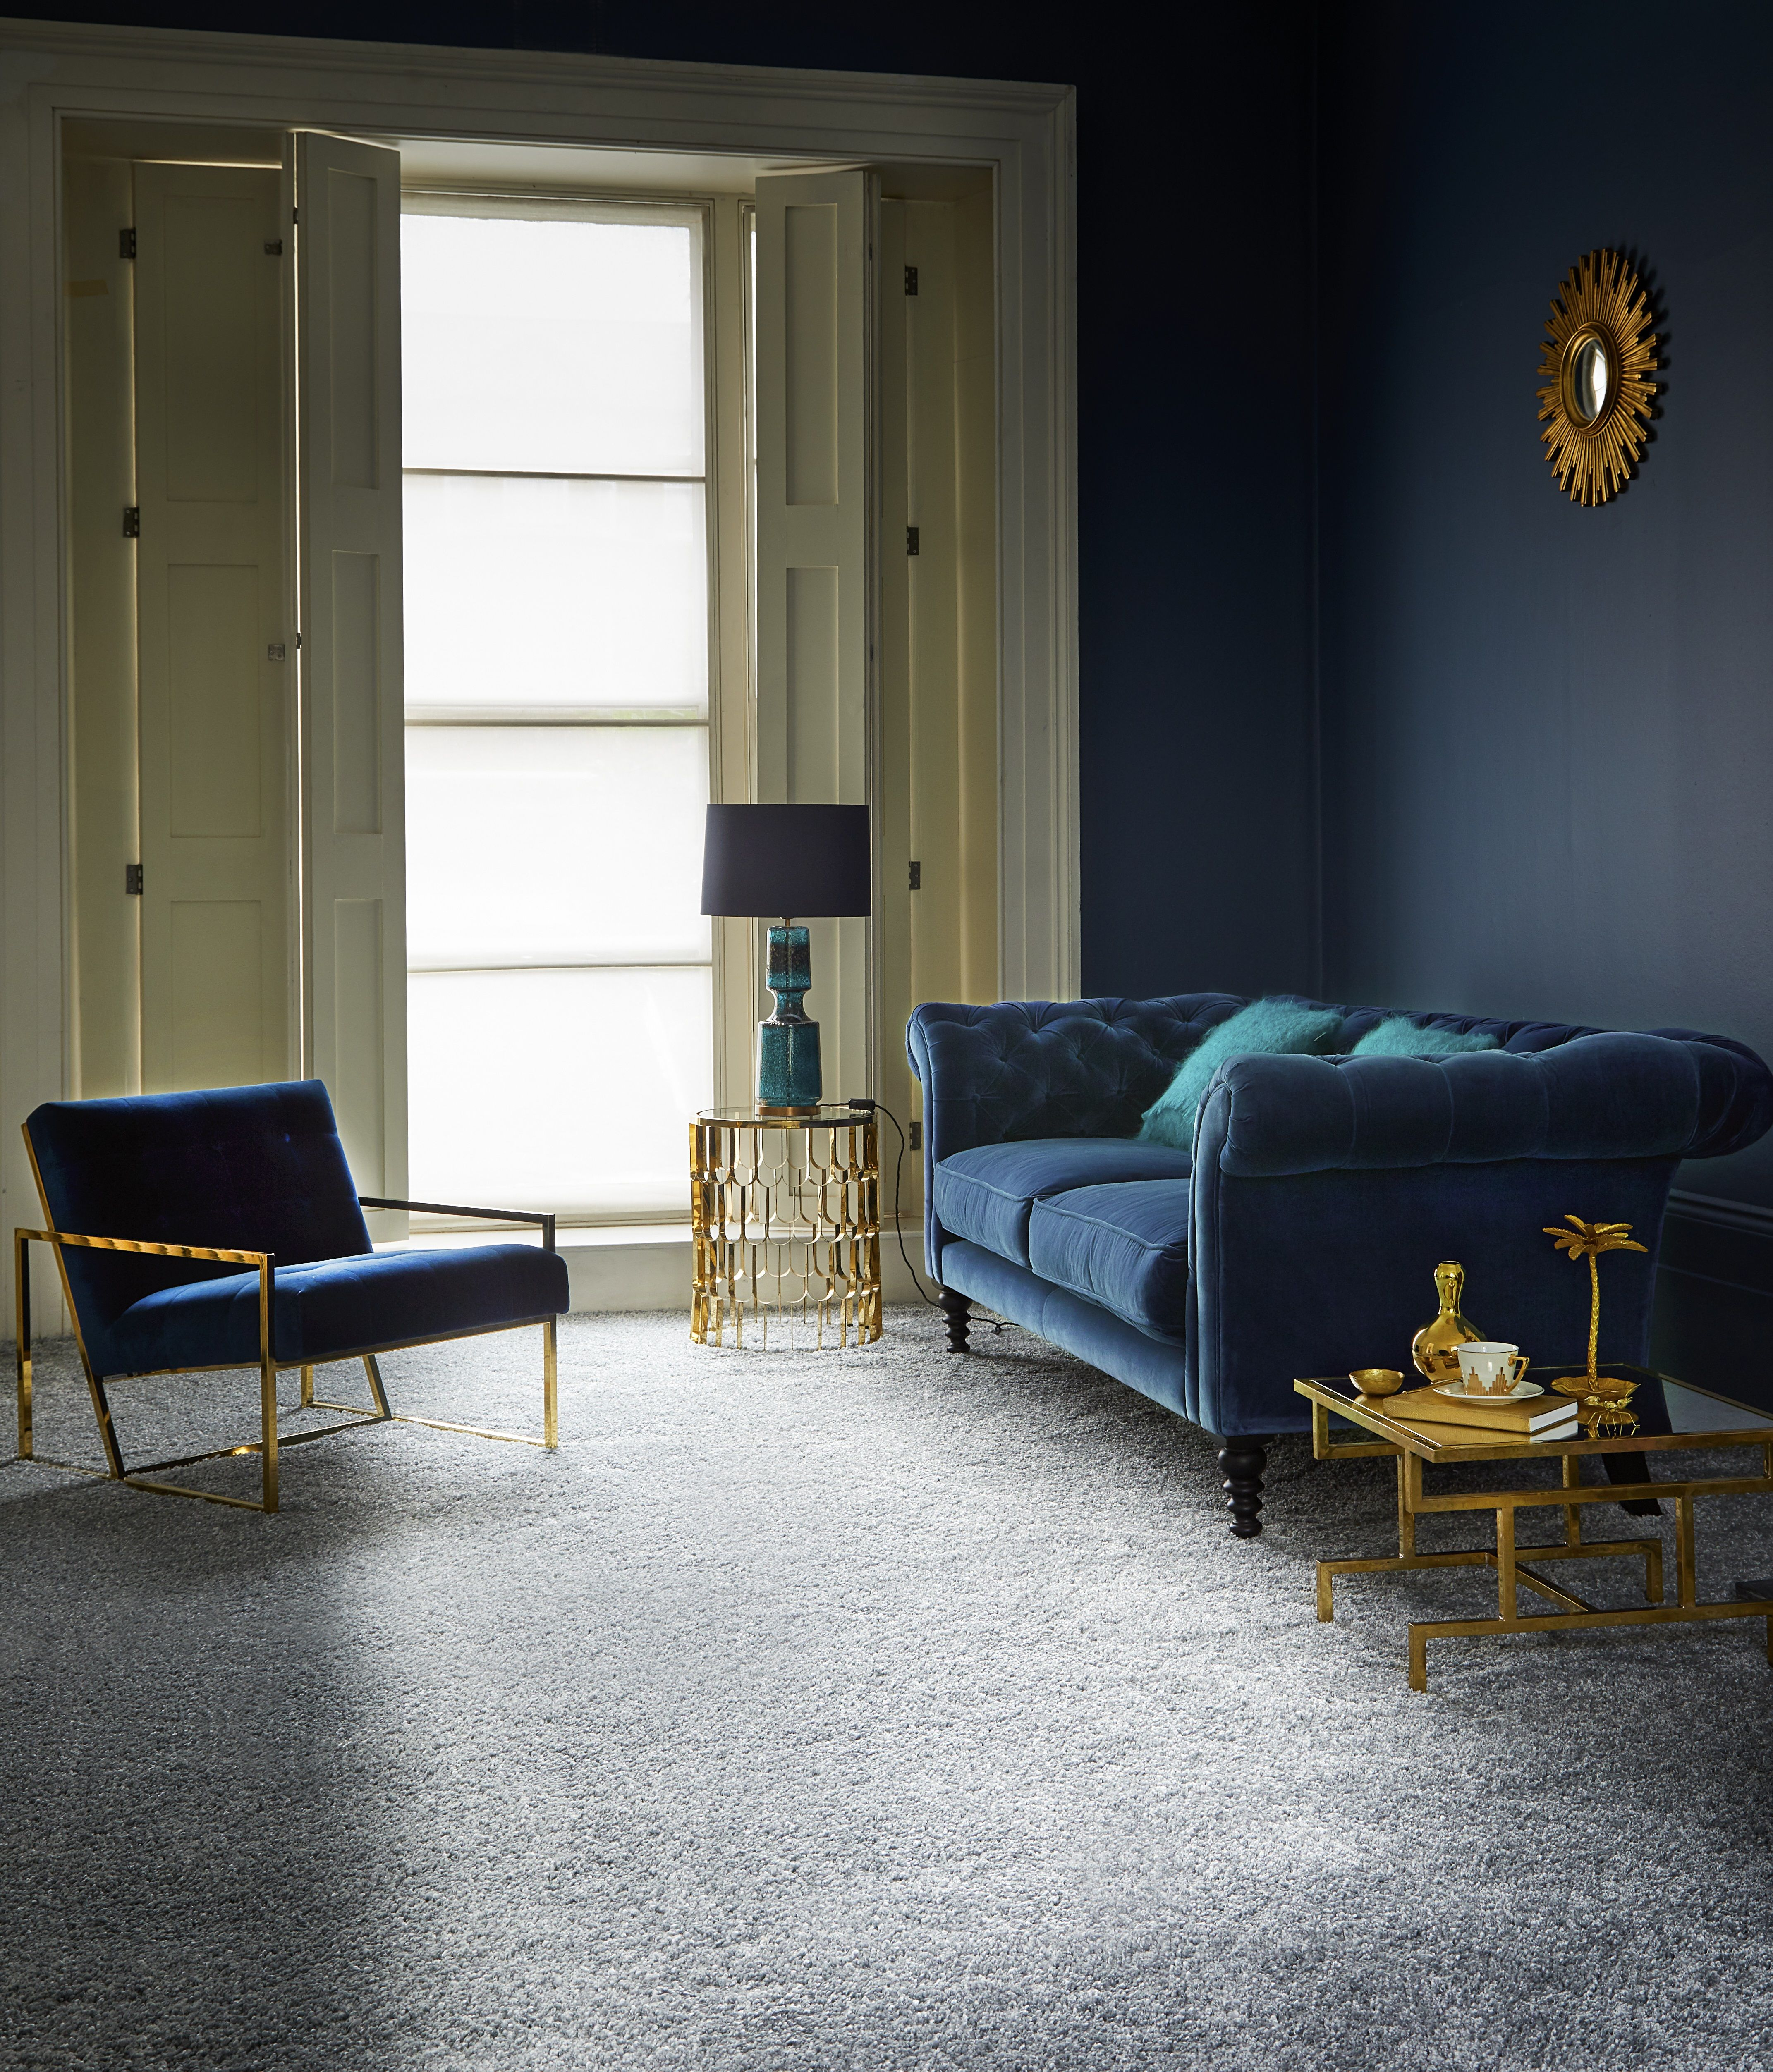 A Grey Carpet Looks Sublime Against A Navy Backdrop With Dark Blue Furniture And Gold Accessor Beige Carpet Bedroom Grey Carpet Living Room Grey Carpet Bedroom